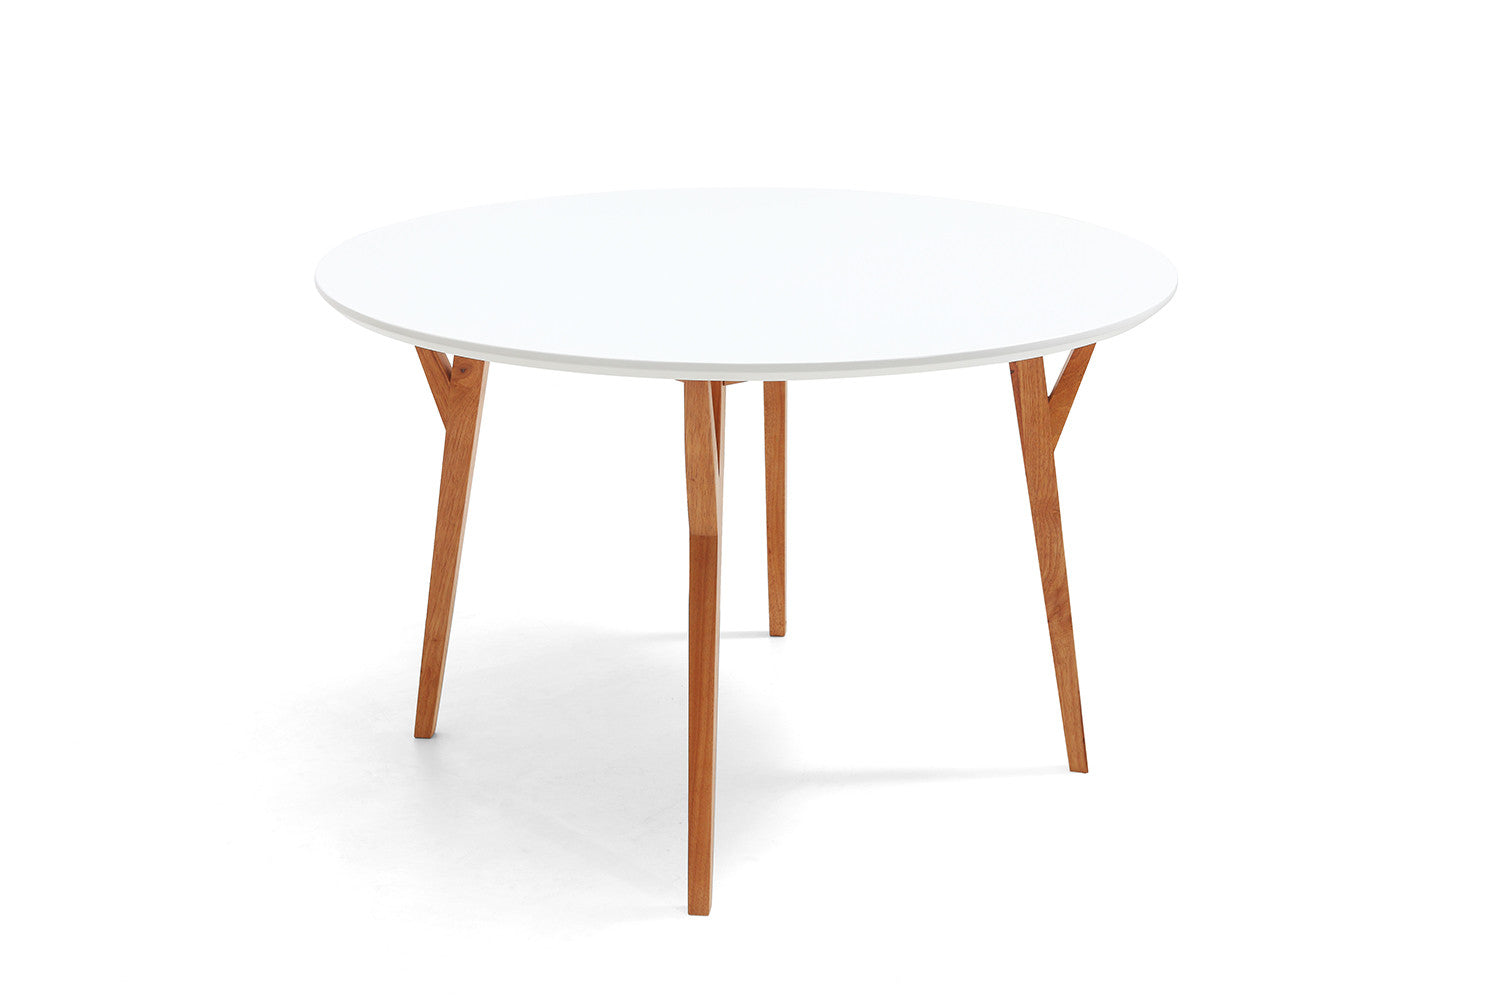 Table de salle manger ronde design scandinave moesa for Table scandinave avec rallonge